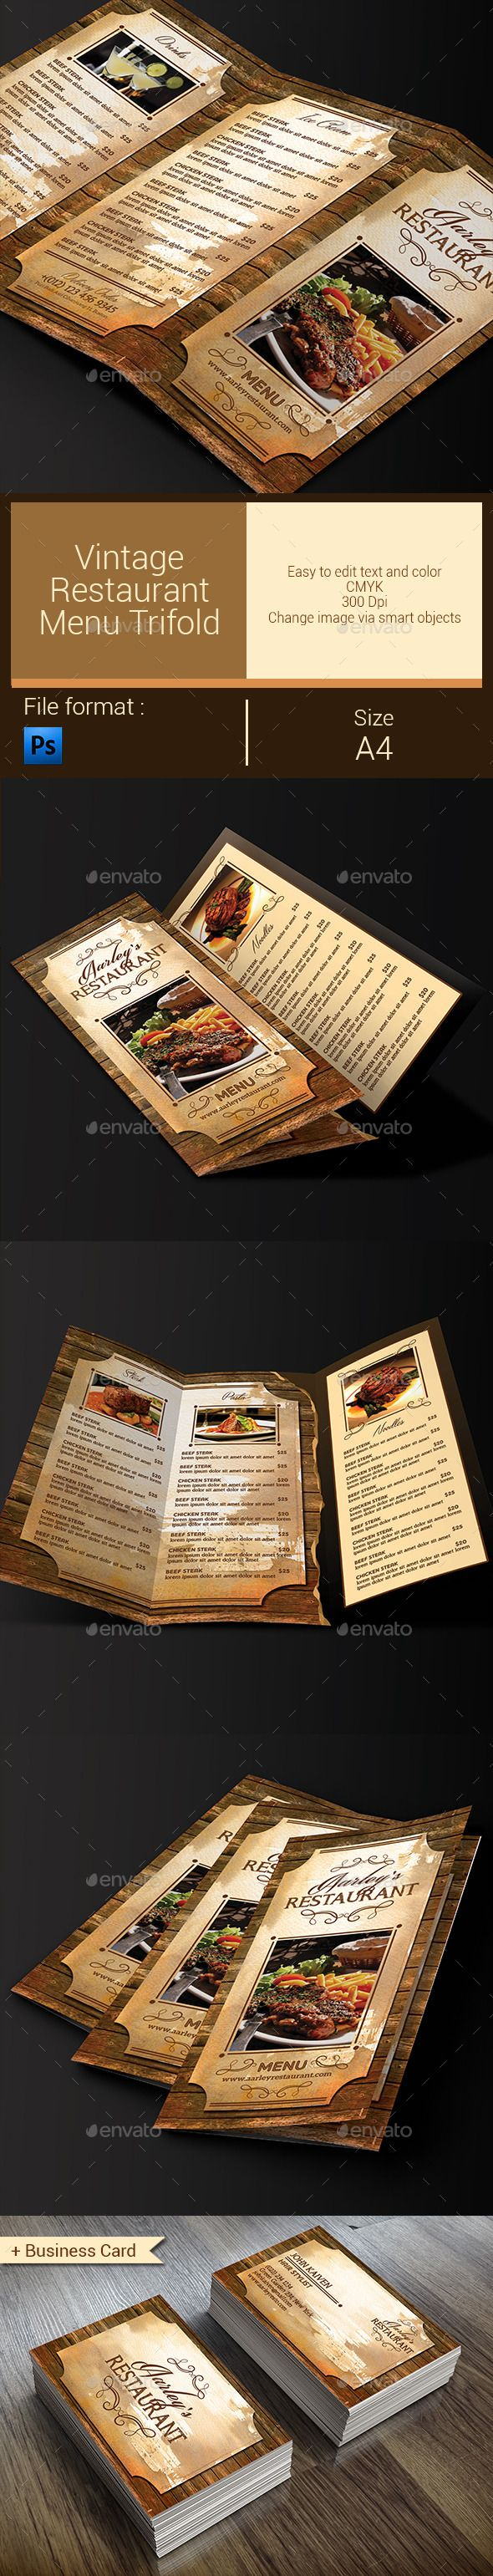 Best 455 trifold restaurant menu template images on pinterest vintage restaurant menu trifold business card colourmoves